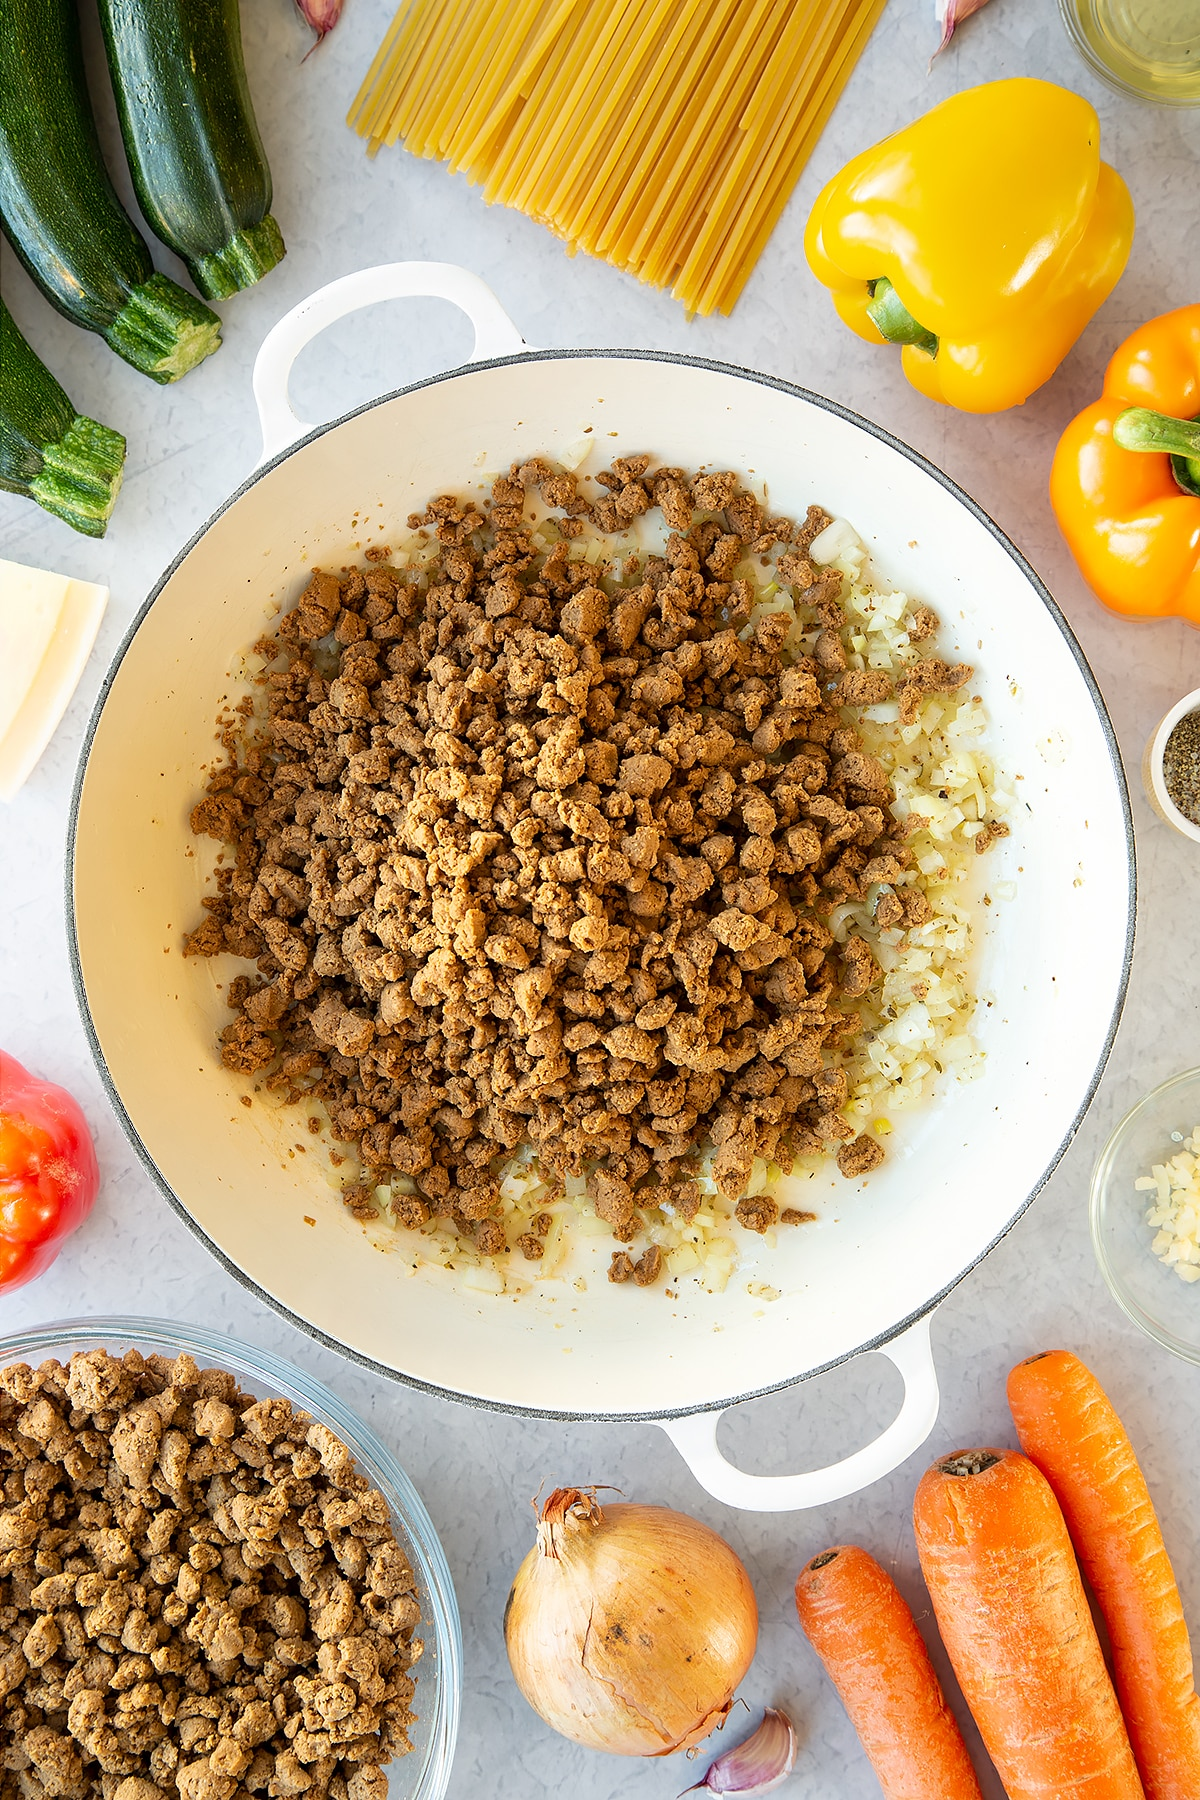 Seasoned garlic and onion sweated in a large pan with meat-free mince on top. Ingredients to make one pot vegan bolognese surround the pan.